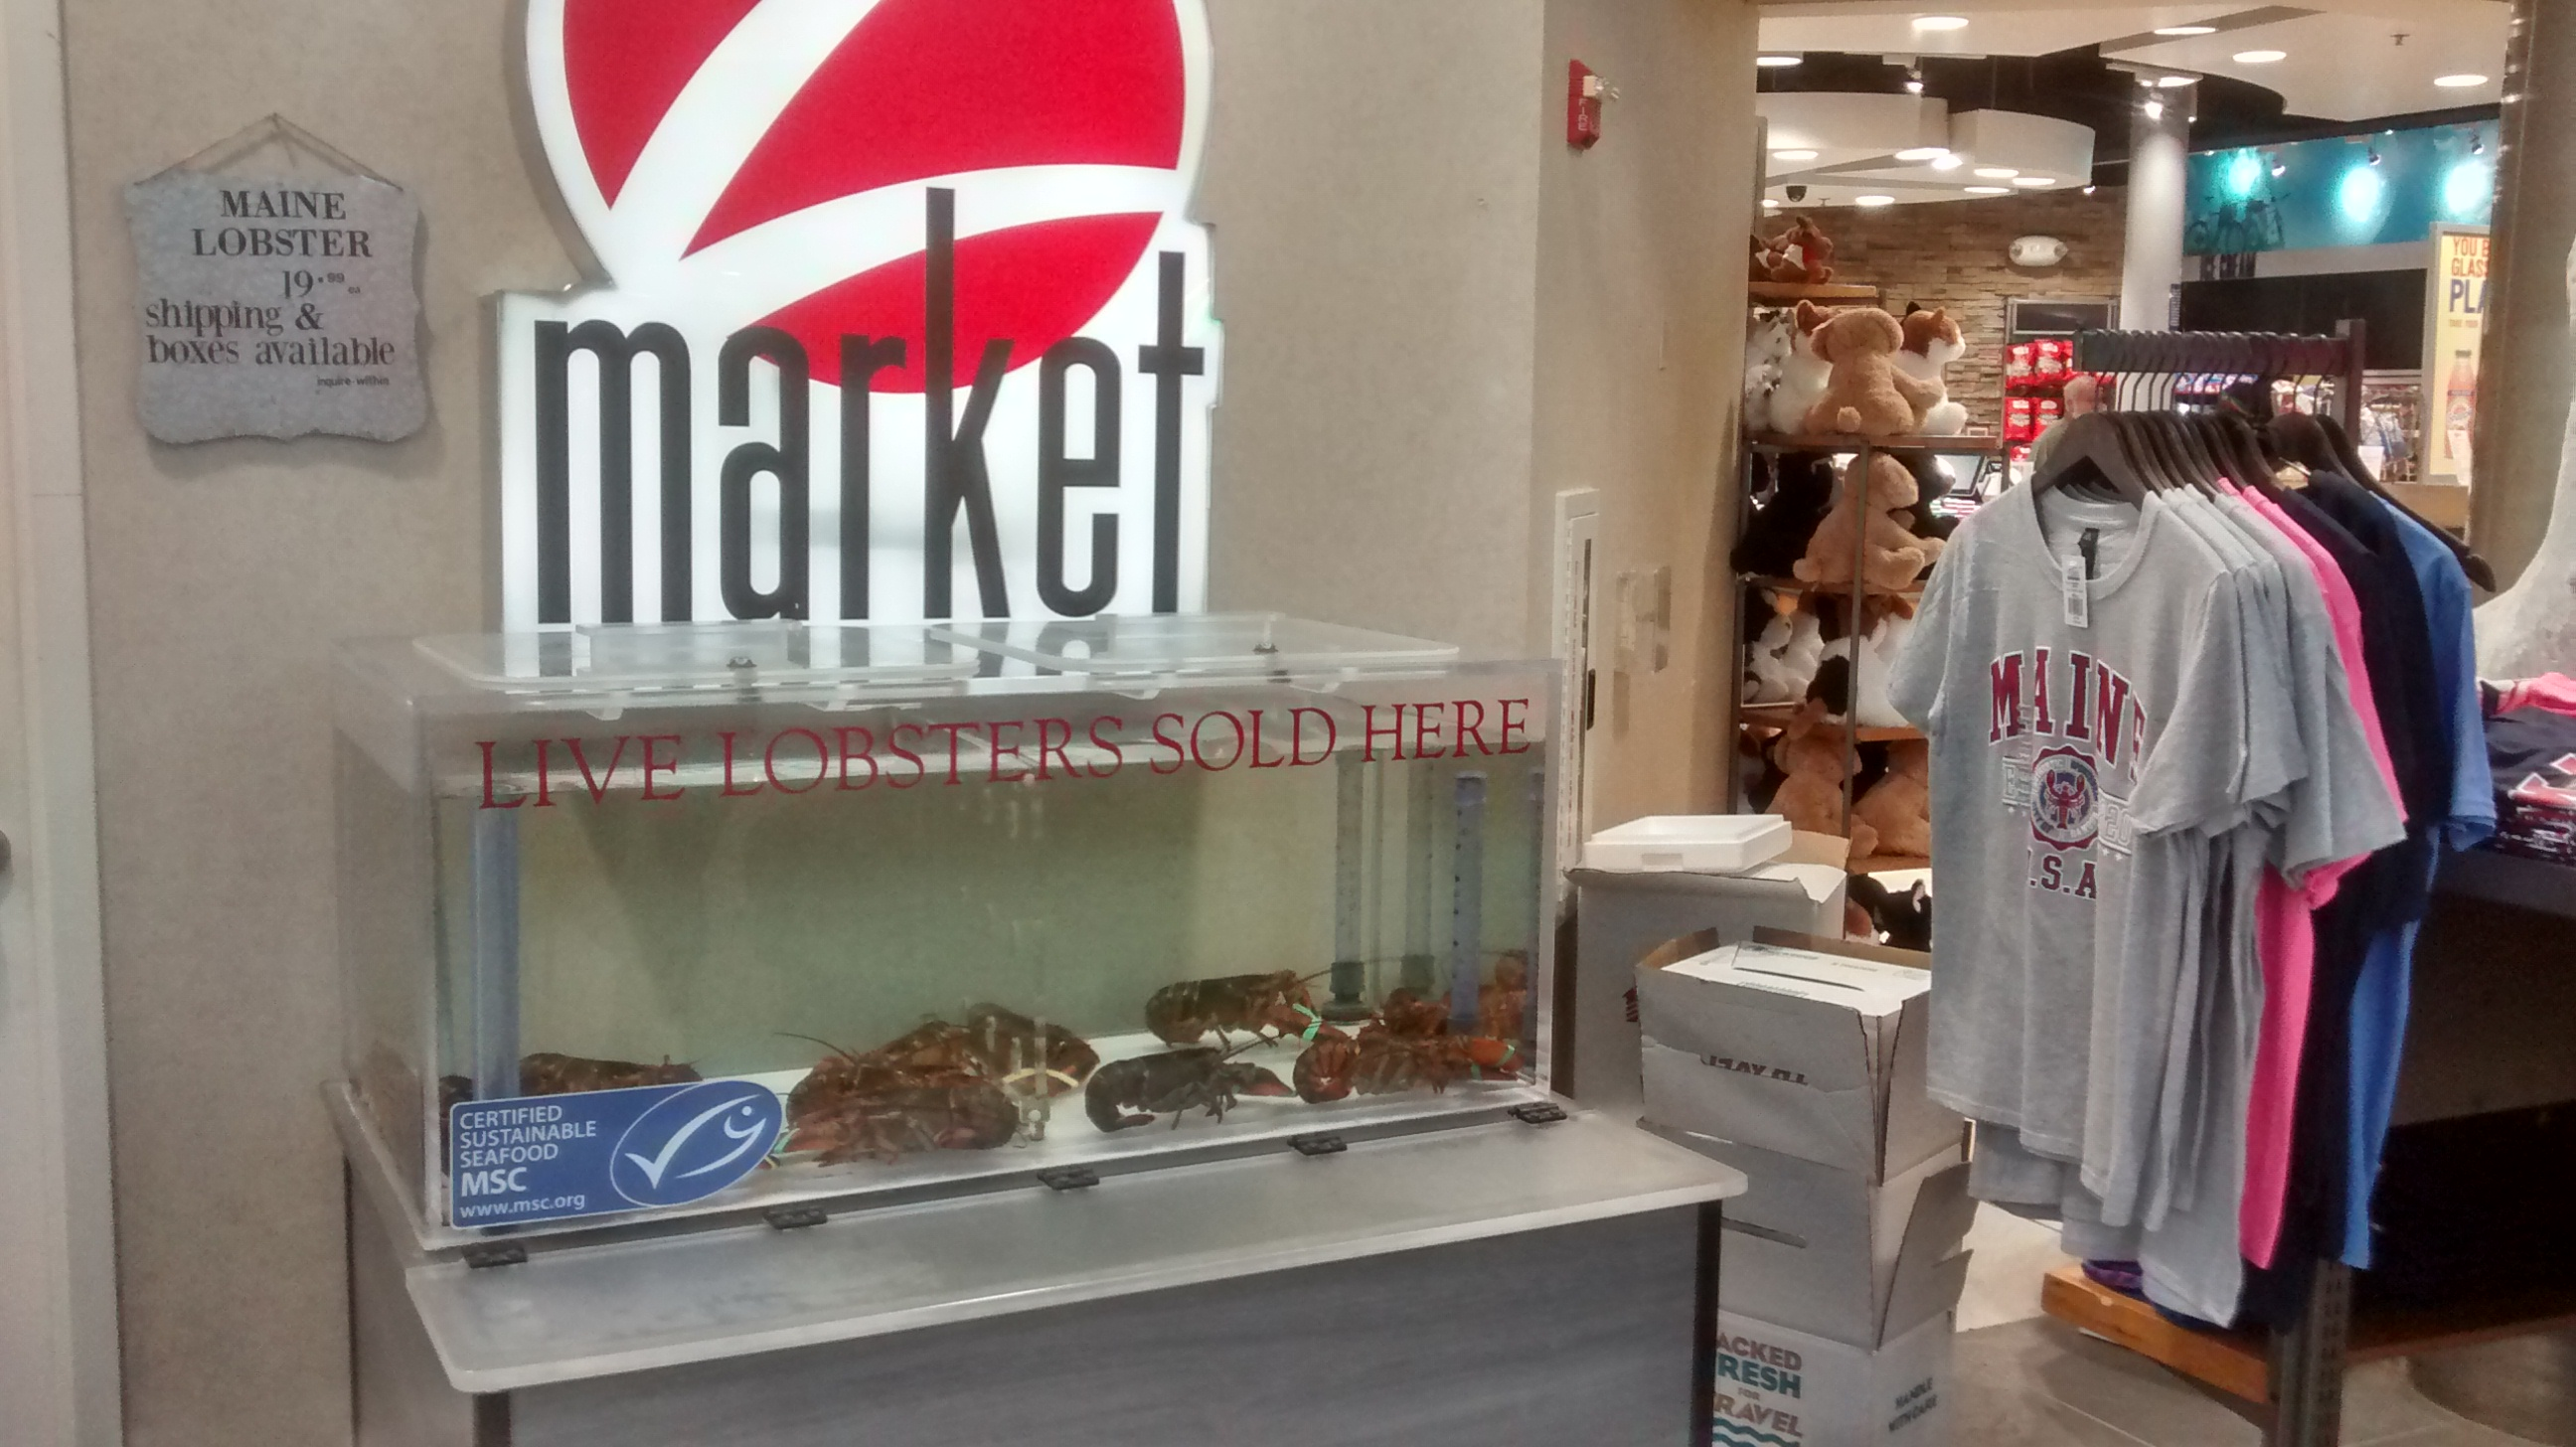 Lobsters for sale in a tank of water displayed alongside other Maine trinkets and souvenirs such as sweatshirts and stuffed animals.